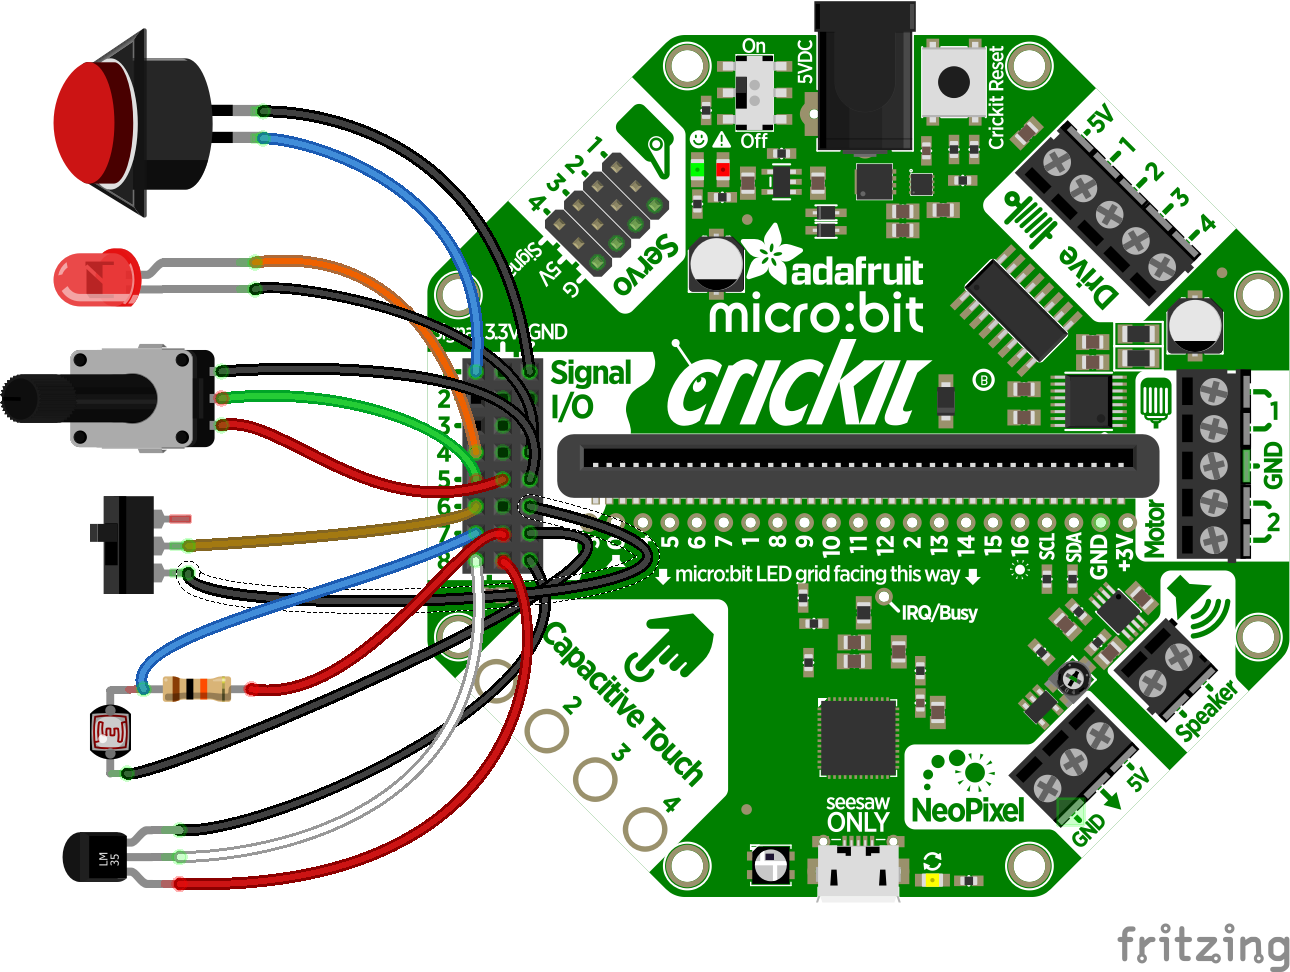 circuit_playground_microbit-signals_bb.png